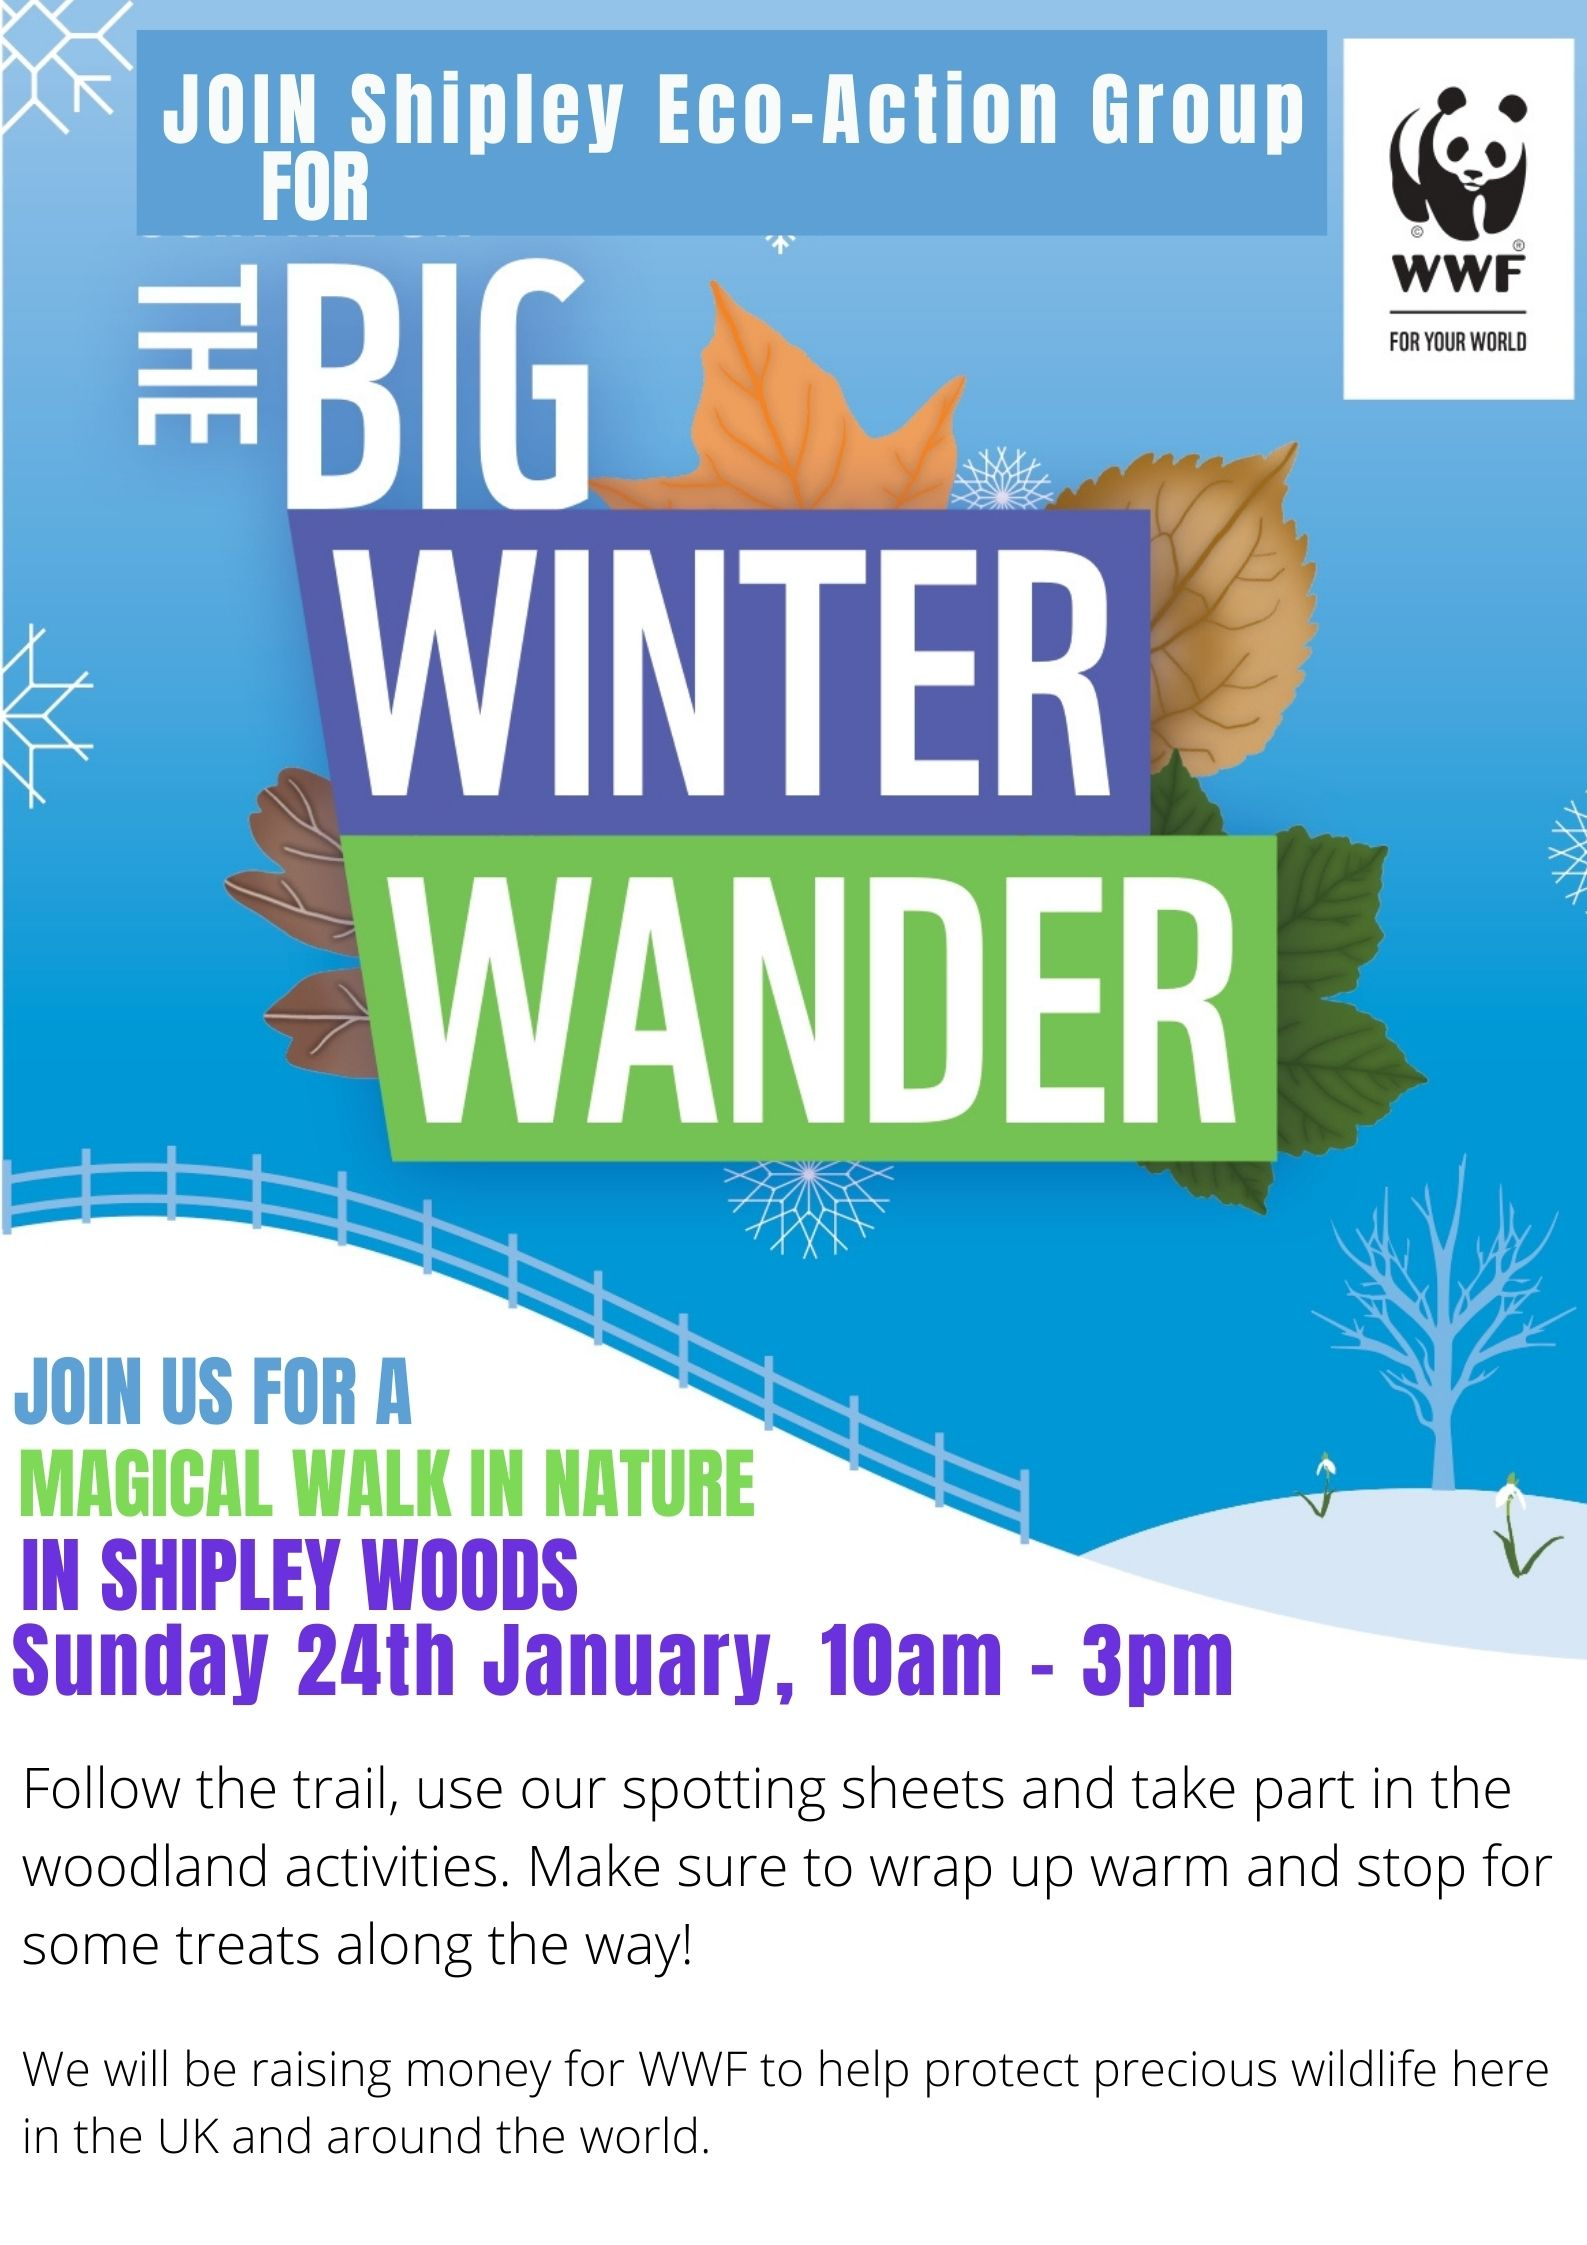 The Big Winter Wander in Shipley Woods (AS OF 09.01.21 EVENT POSTPONED) - SEAG - Shipley Eco-Action Group